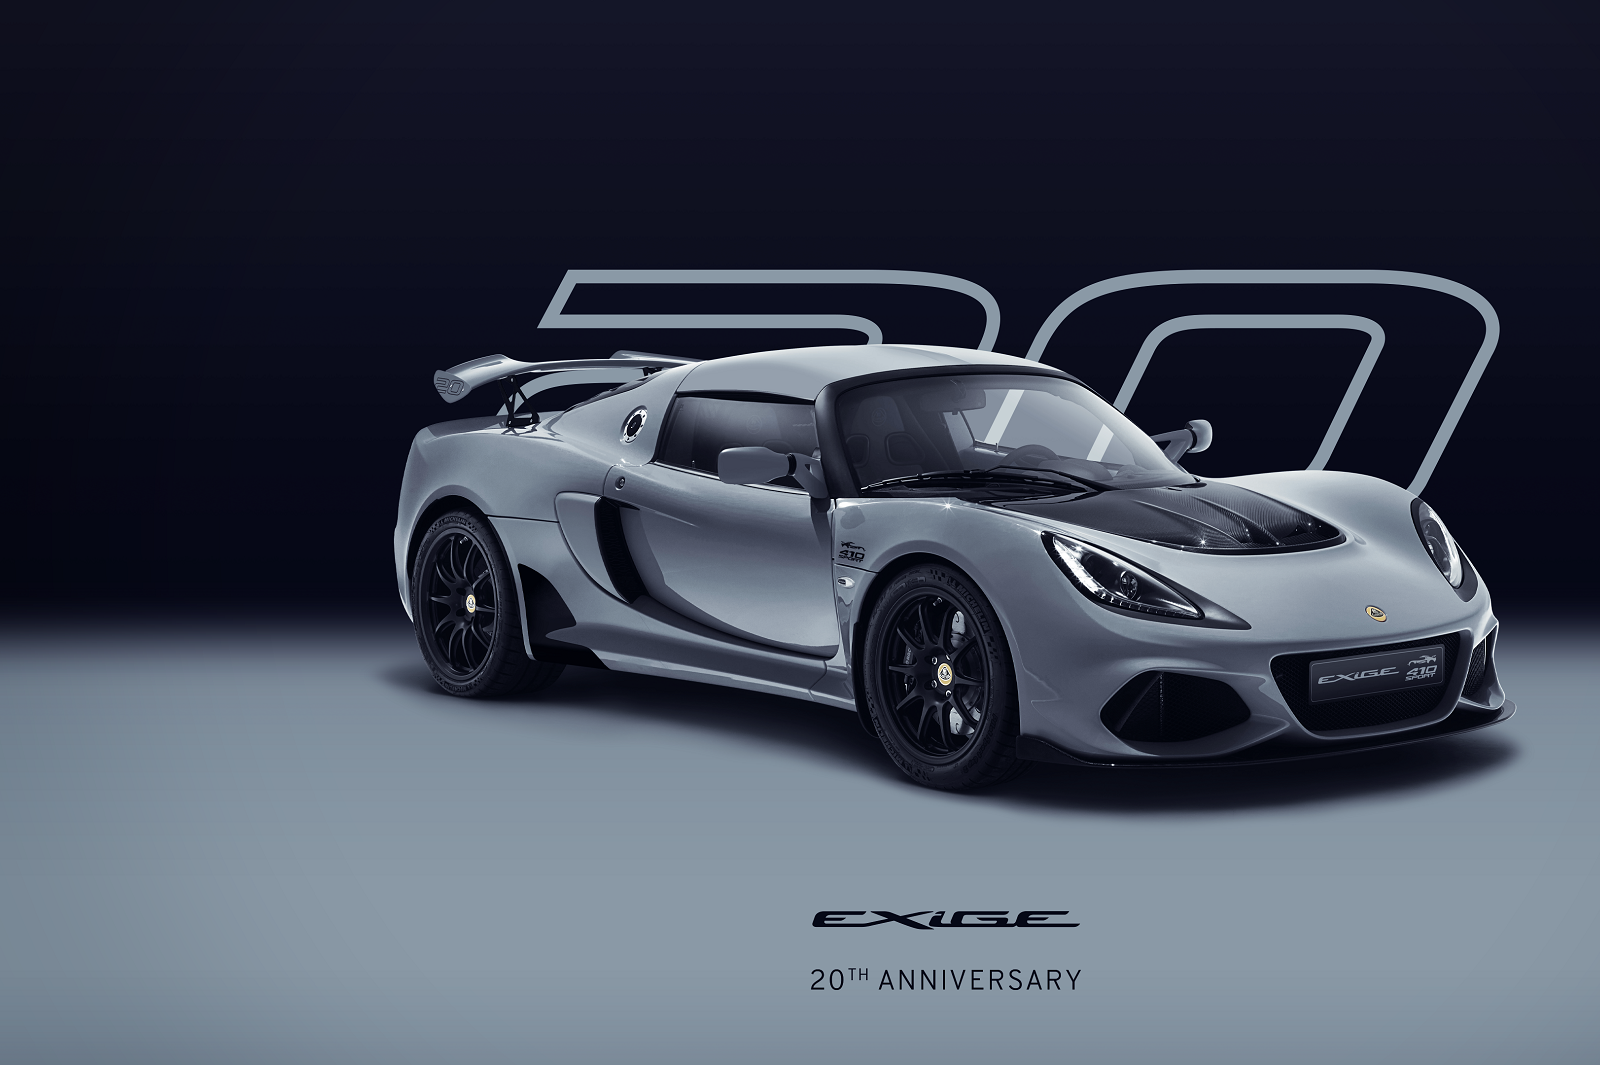 Exige 20th Anniversary_Silver_Hero_Front